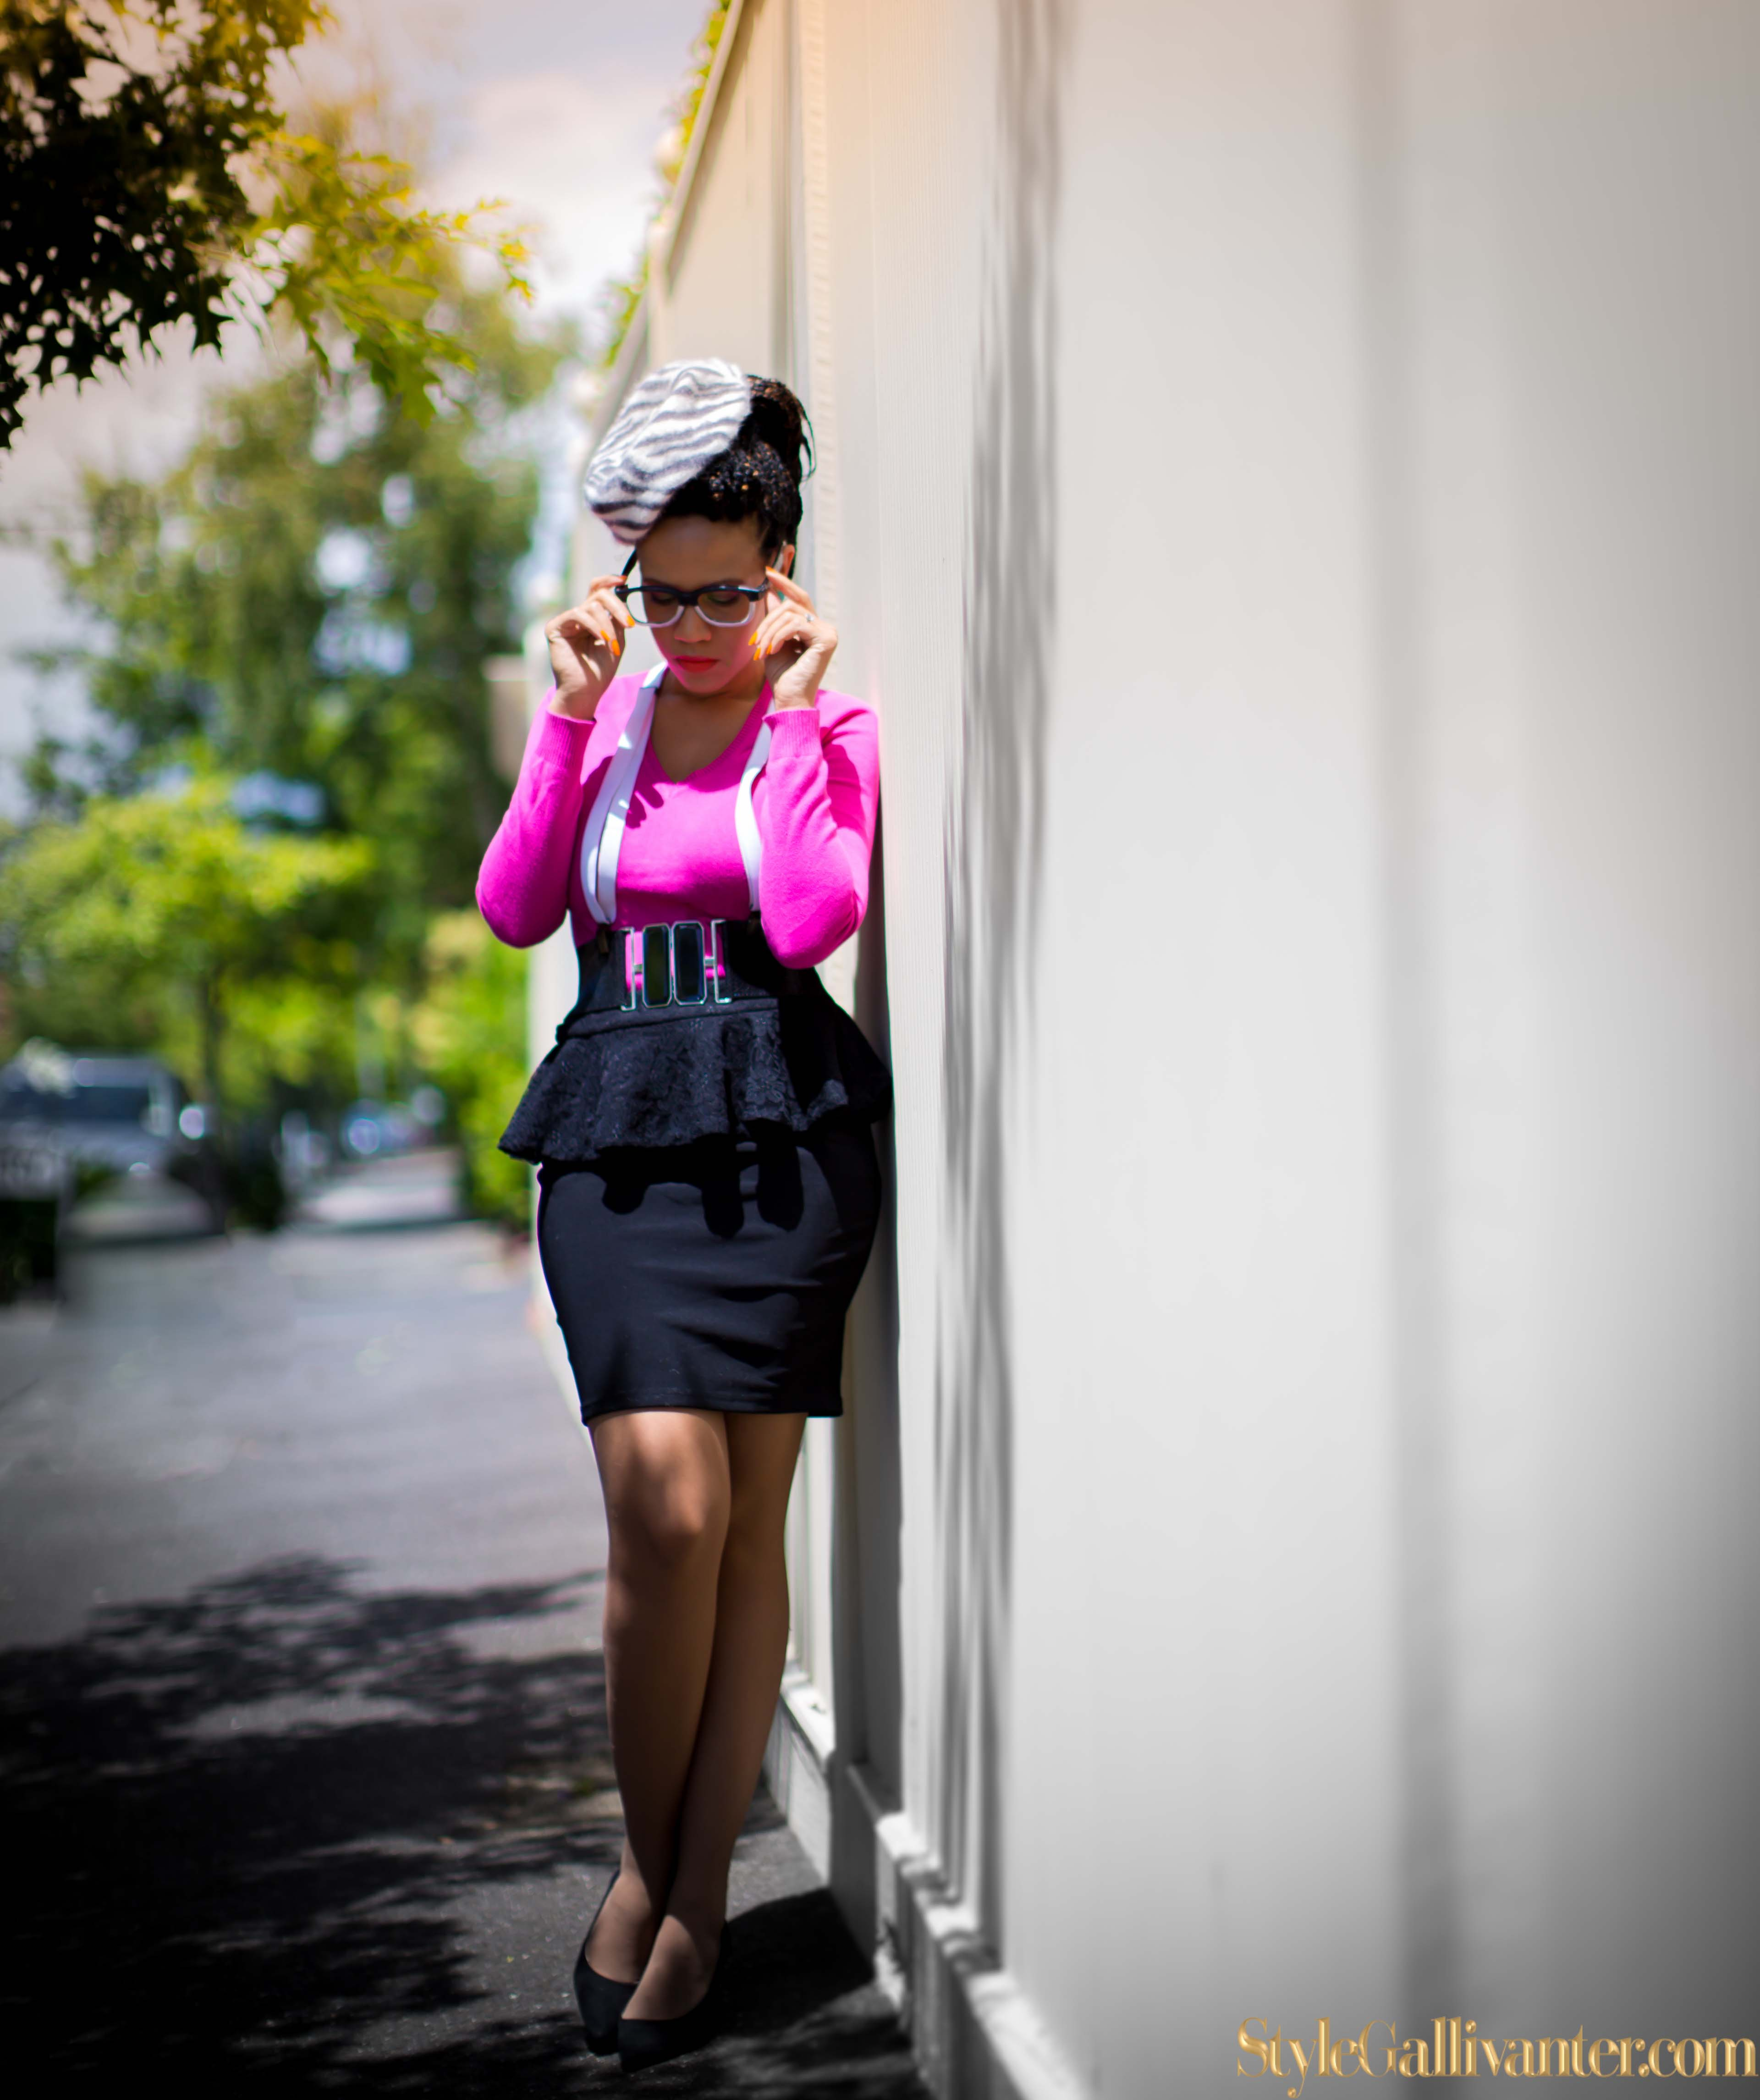 pink-and-black_melbourne's-most-interesting-fashion-bloggers_australia's-african-fashion-bloggers_africa's-best-fashion-blogger_valentine's-day-outfit-ideas_easy-box-braids-styles